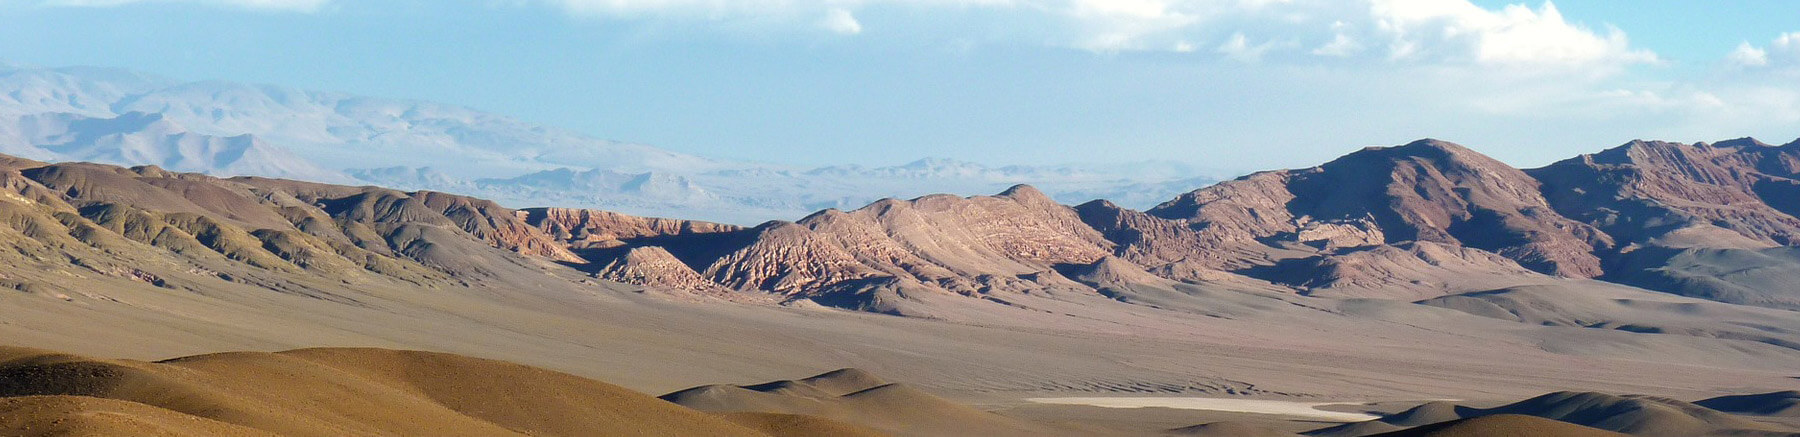 Panorama of Atacama Desert in Chile